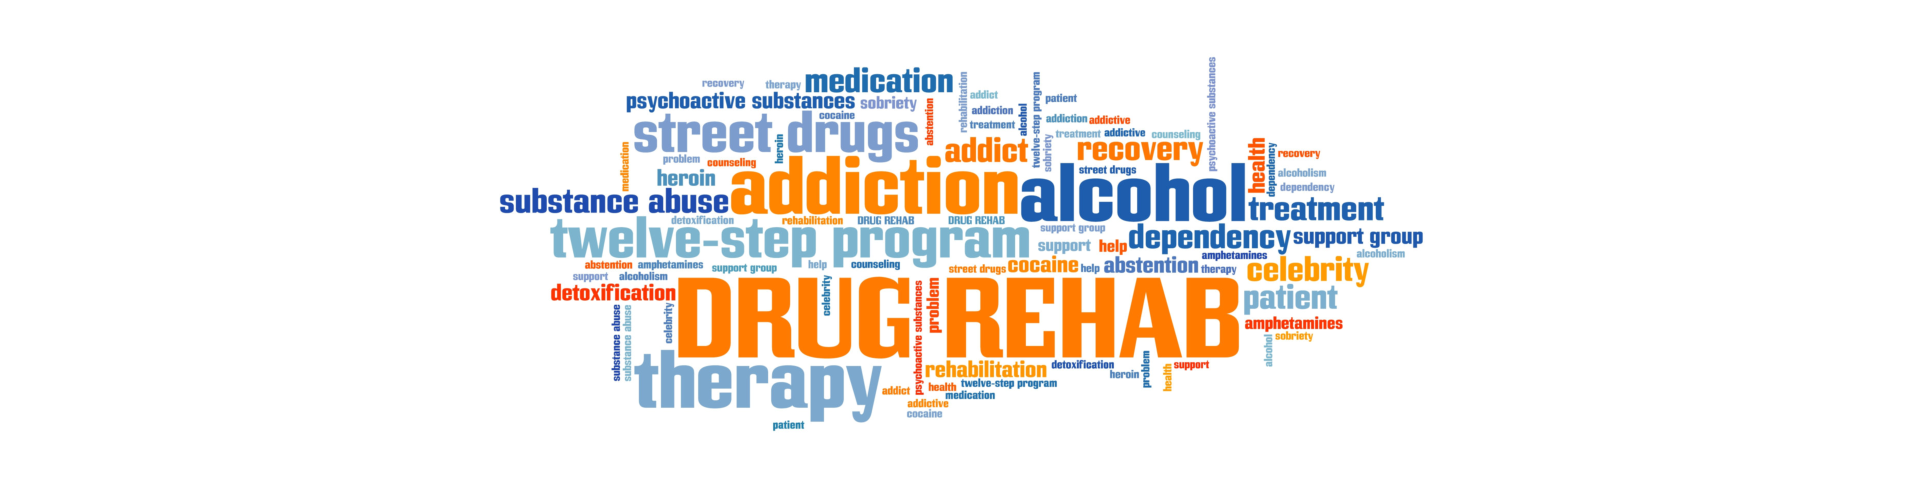 drug rehab drugs addiction word cloud